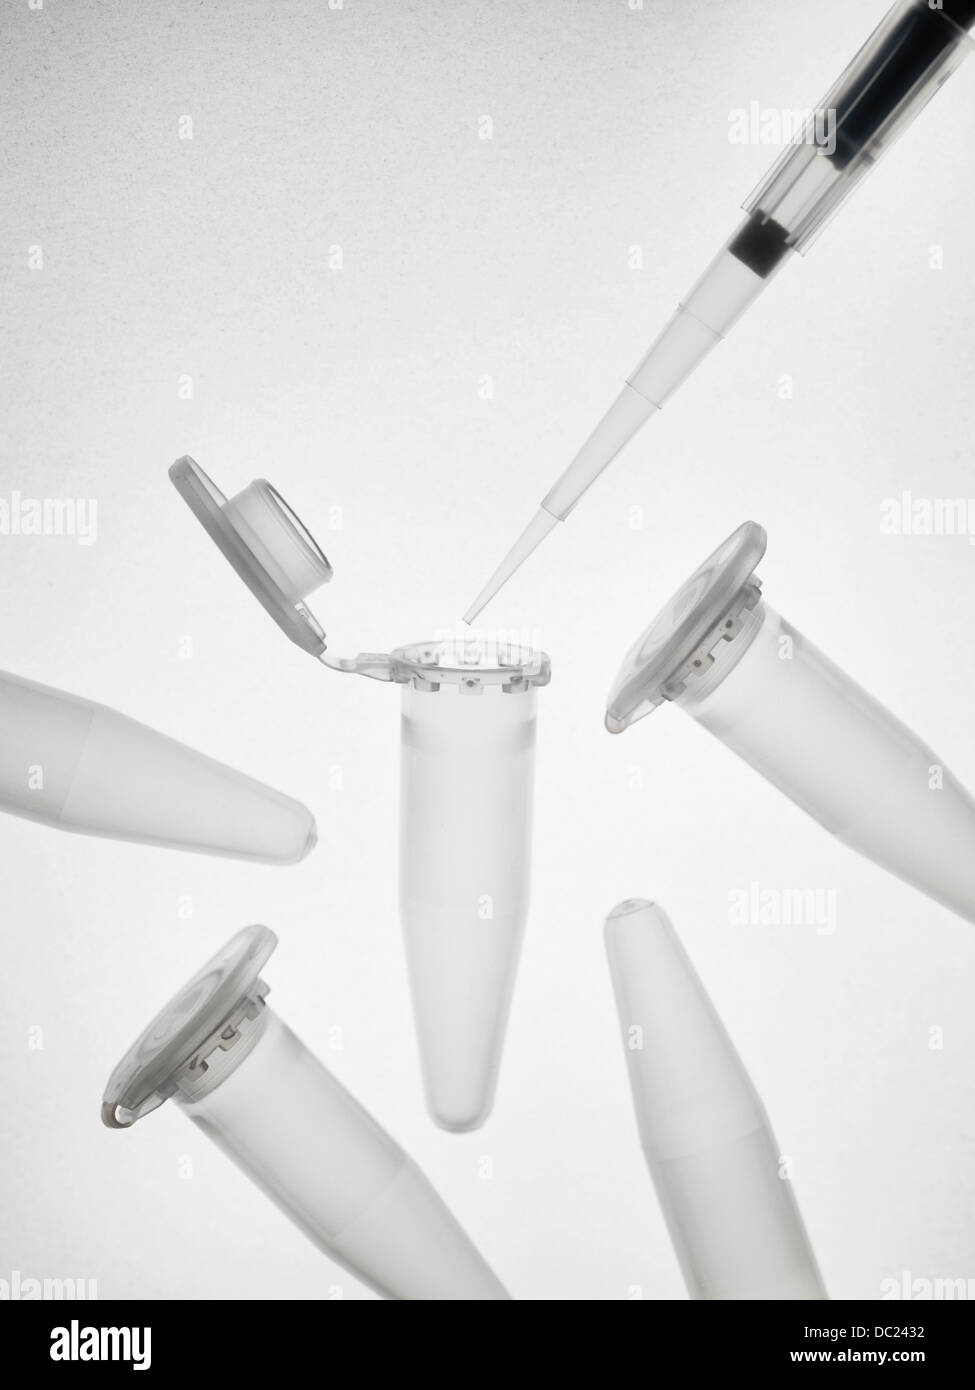 Pipette and eppendorf vials - Stock Image